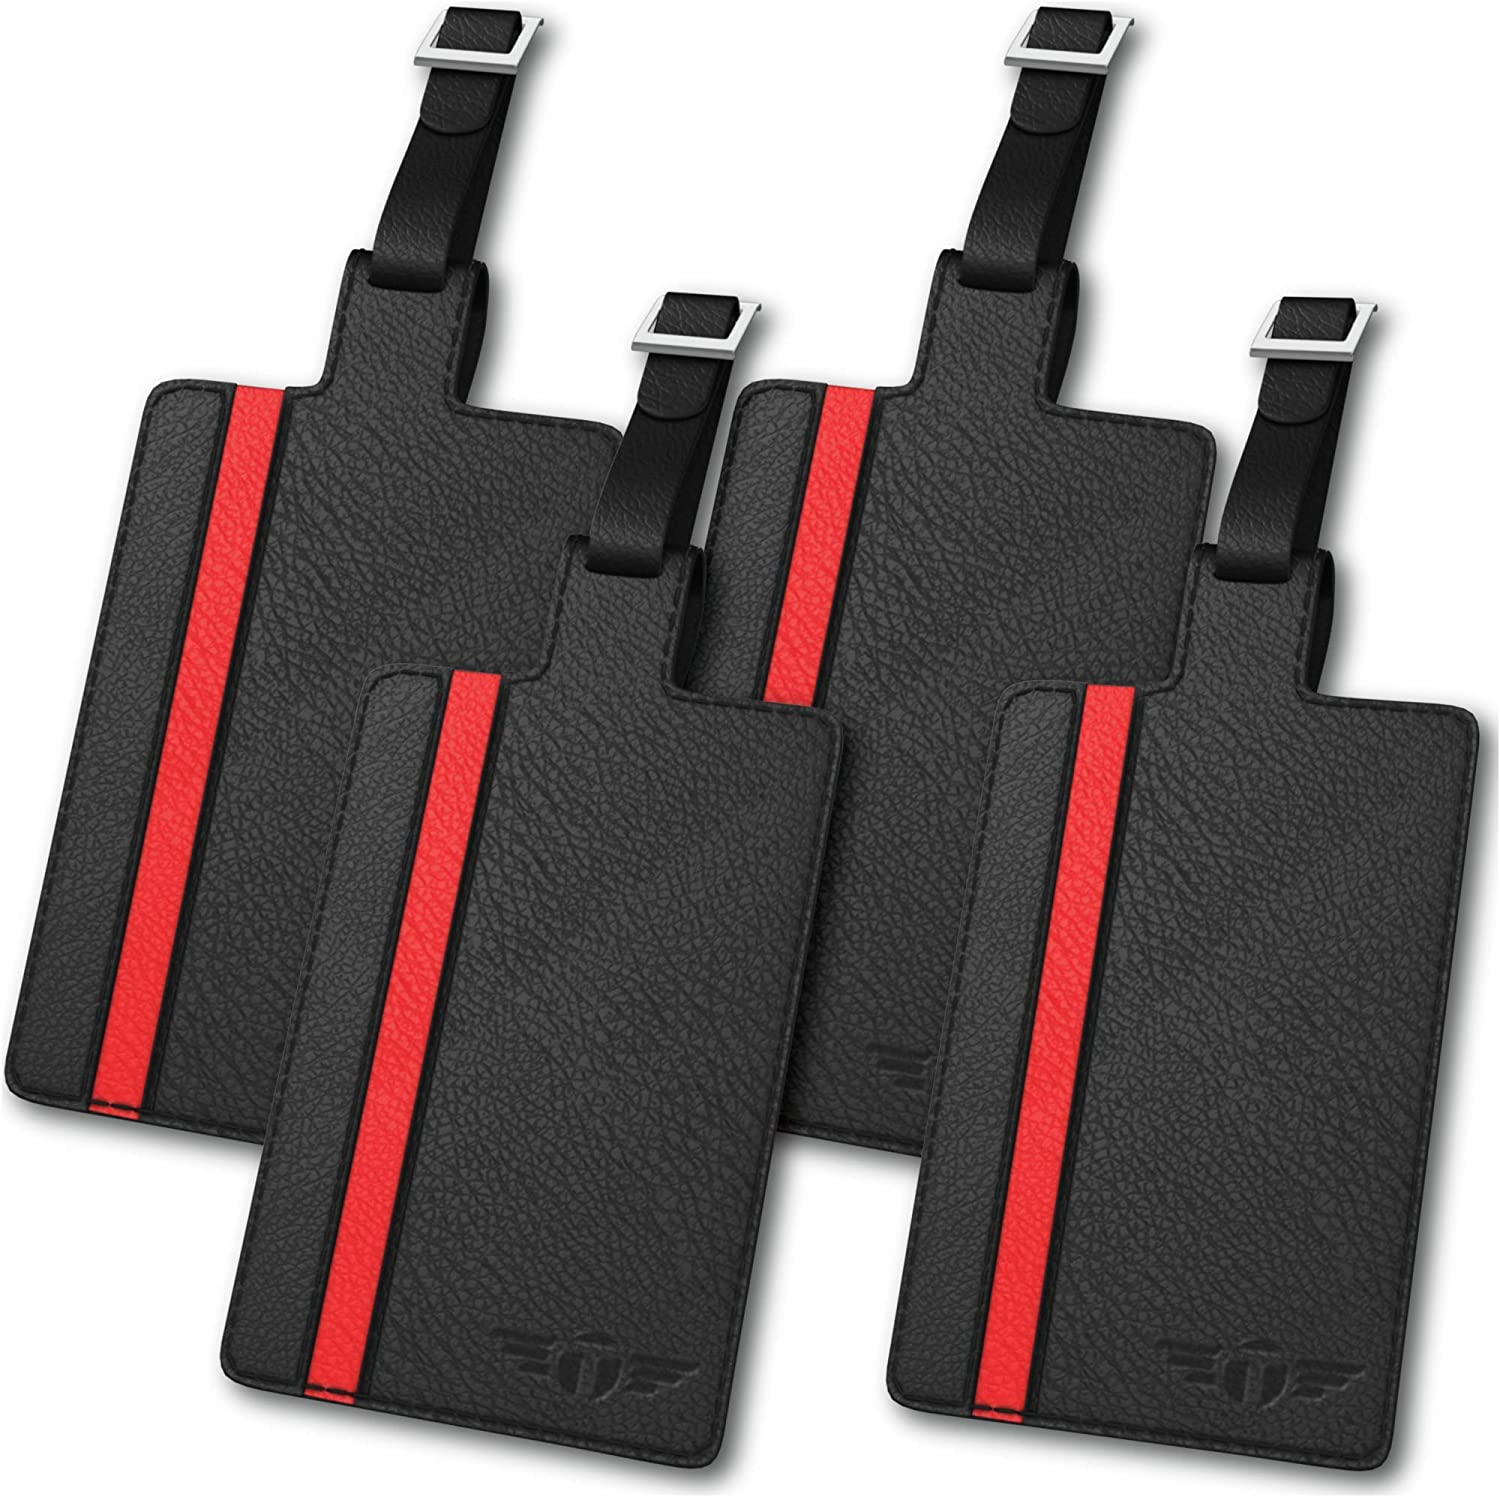 Talonport Real Leather Luggage Tag with 2021 Set for Low price Flap Men Privacy